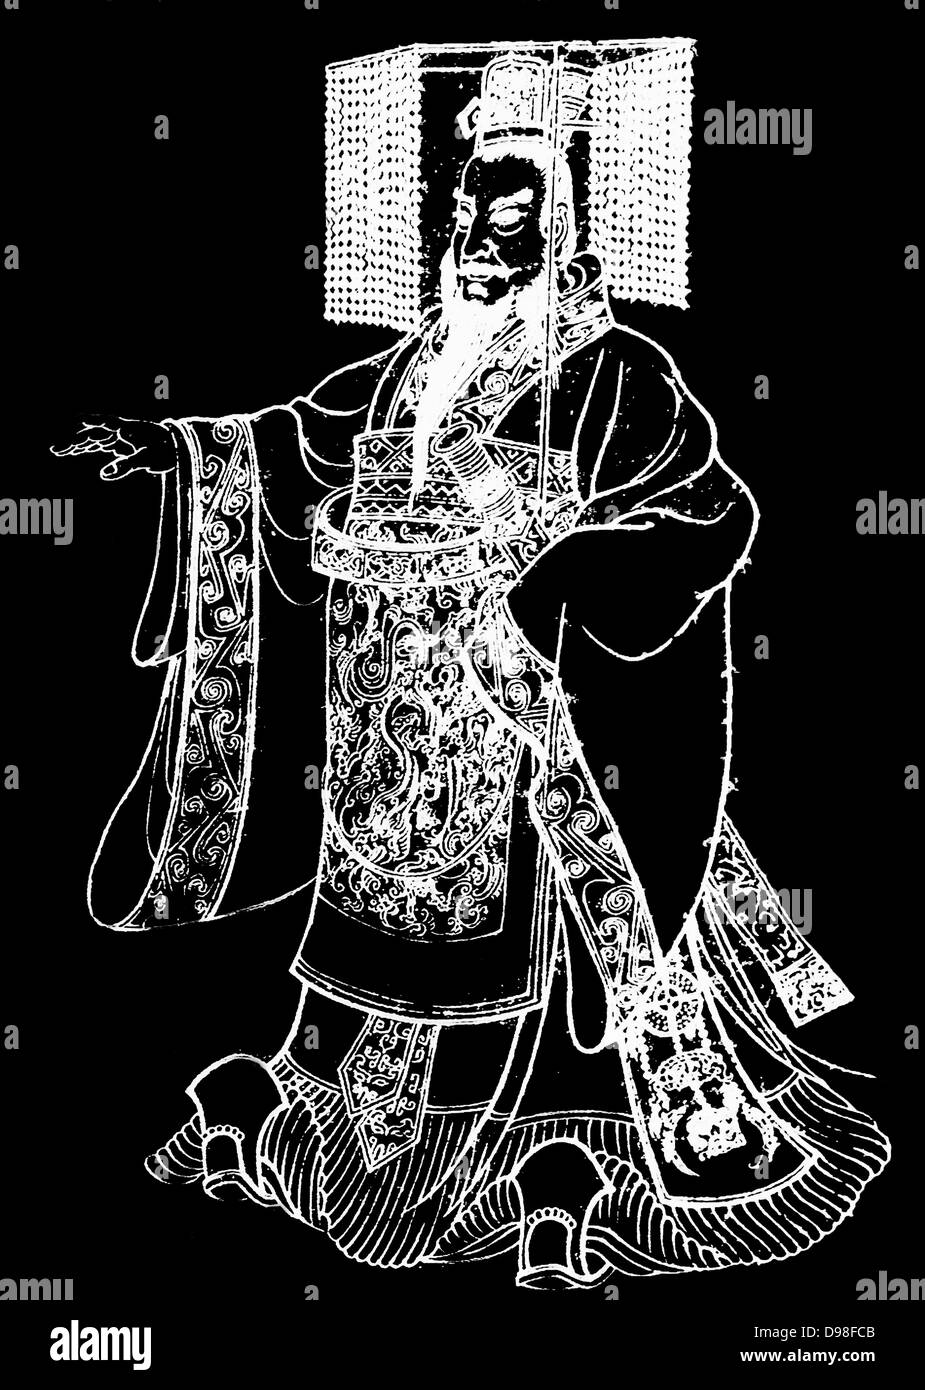 Qin Shi Huangdi (259 BC – 210 BC), king of the Chinese State of Qin from 246 BC to 221 BC during the Warring States - Stock Image